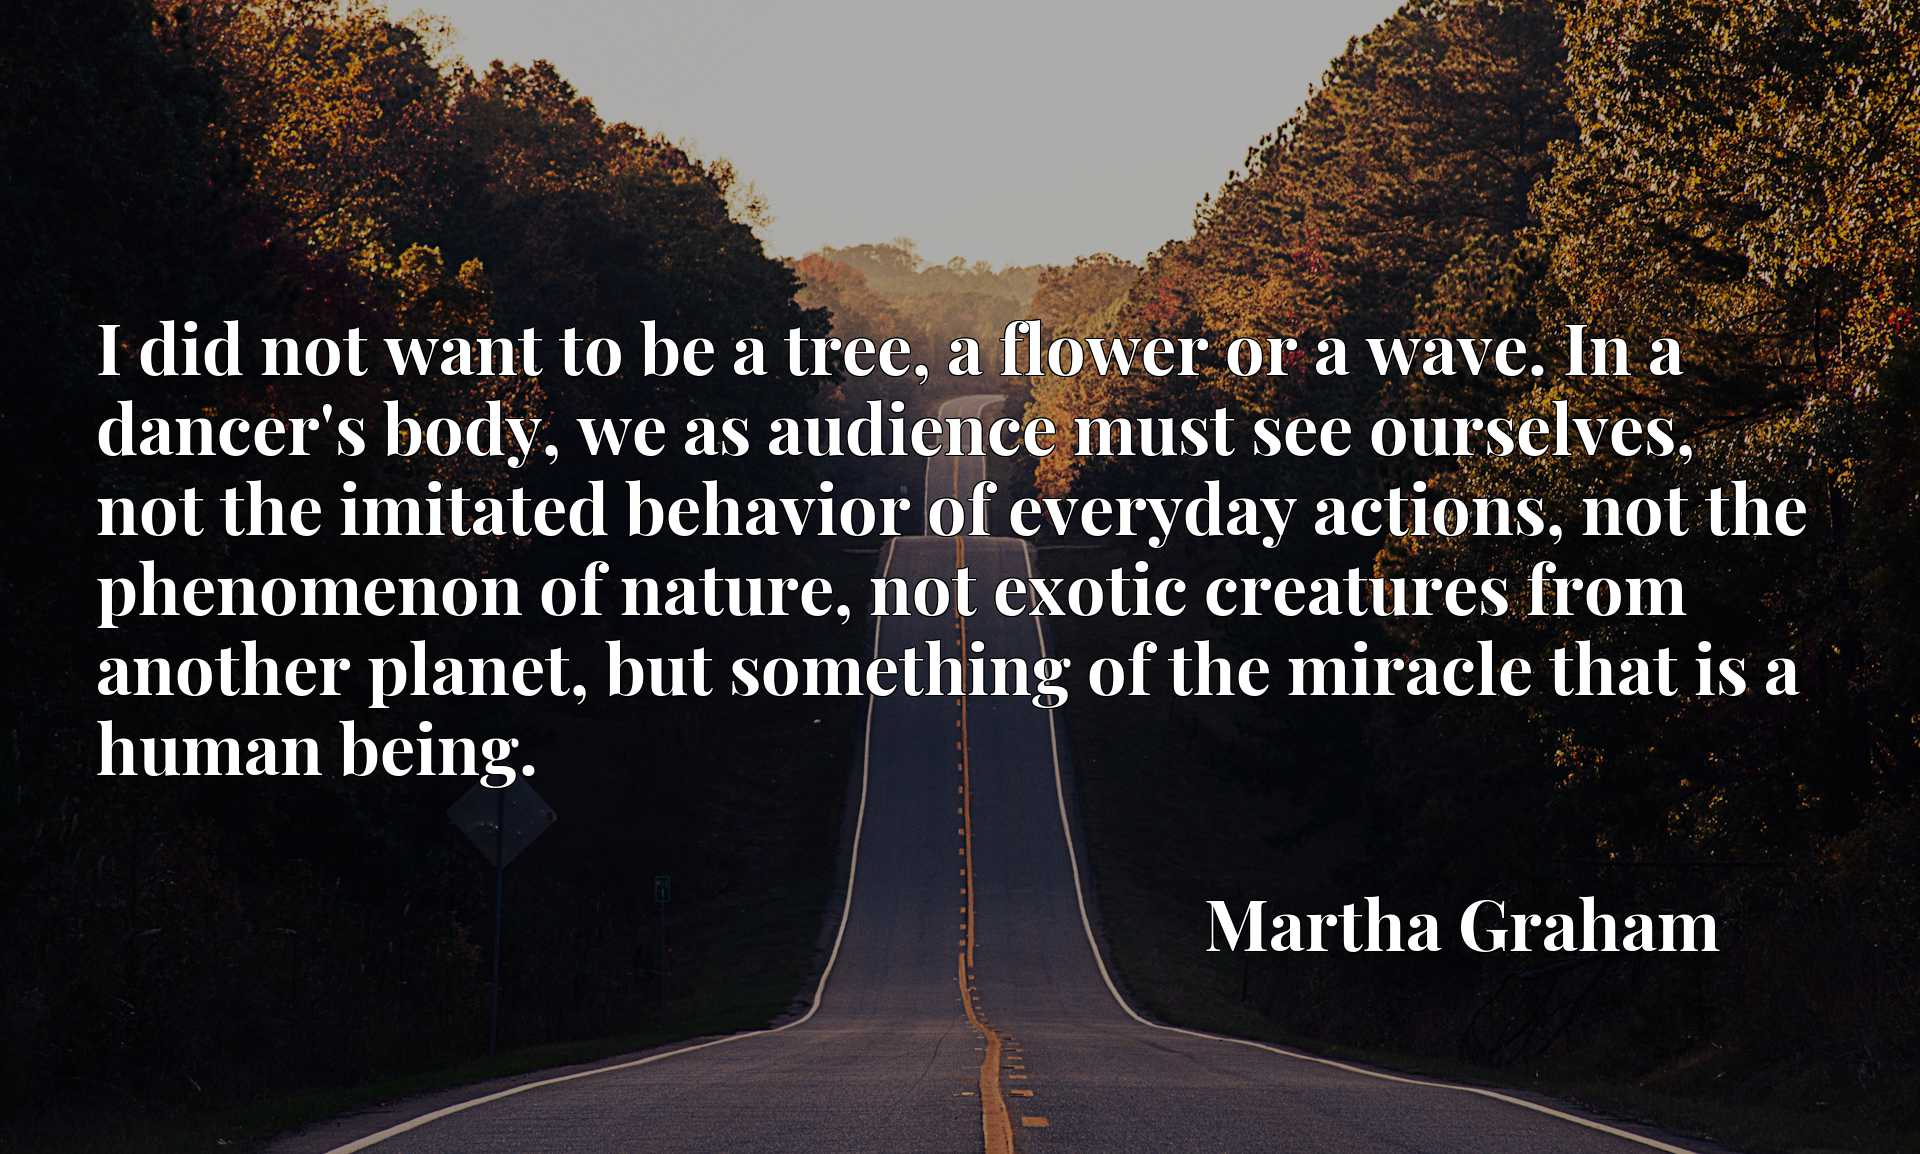 Quote Picture :I did not want to be a tree, a flower or a wave. In a dancer's body, we as audience must see ourselves, not the imitated behavior of everyday actions, not the phenomenon of nature, not exotic creatures from another planet, but something of the miracle that is a human being.